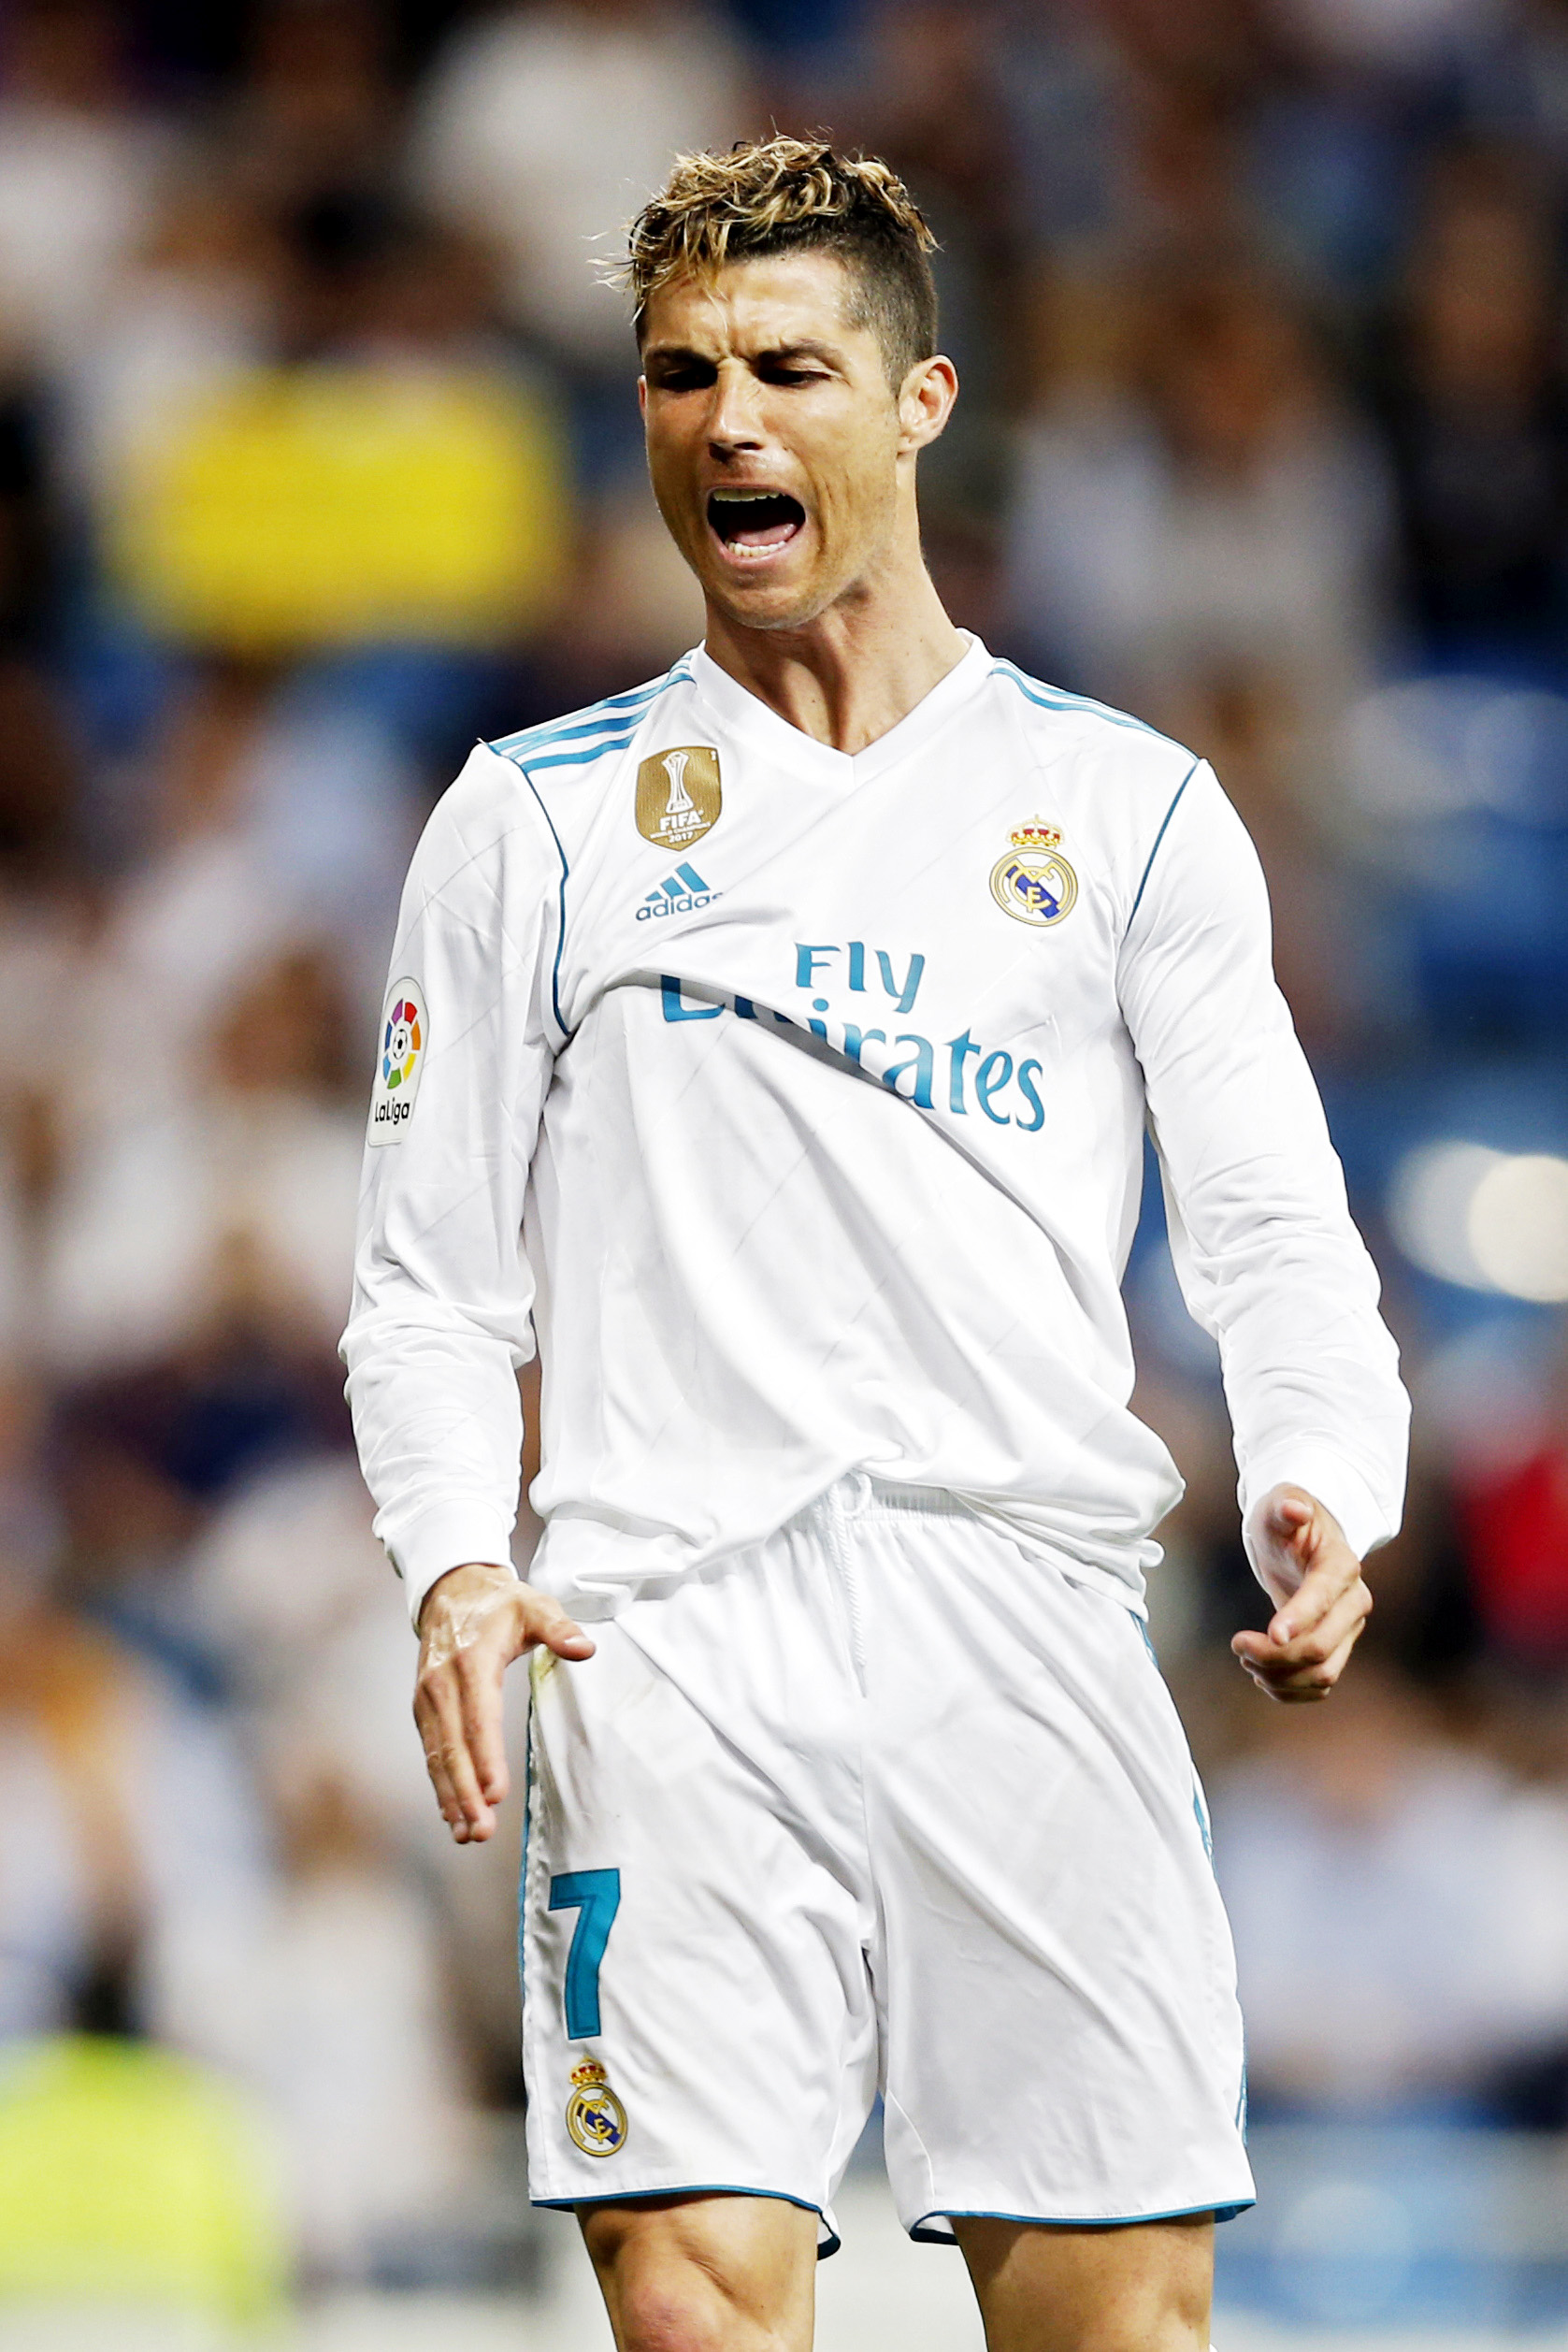 Real Madrid's Cristiano Ronaldo gestures during a Spanish La Liga soccer match between Real Madrid and Athletic Bilbao at the Santiago Bernabeu stadium in Madrid on Wednesday.